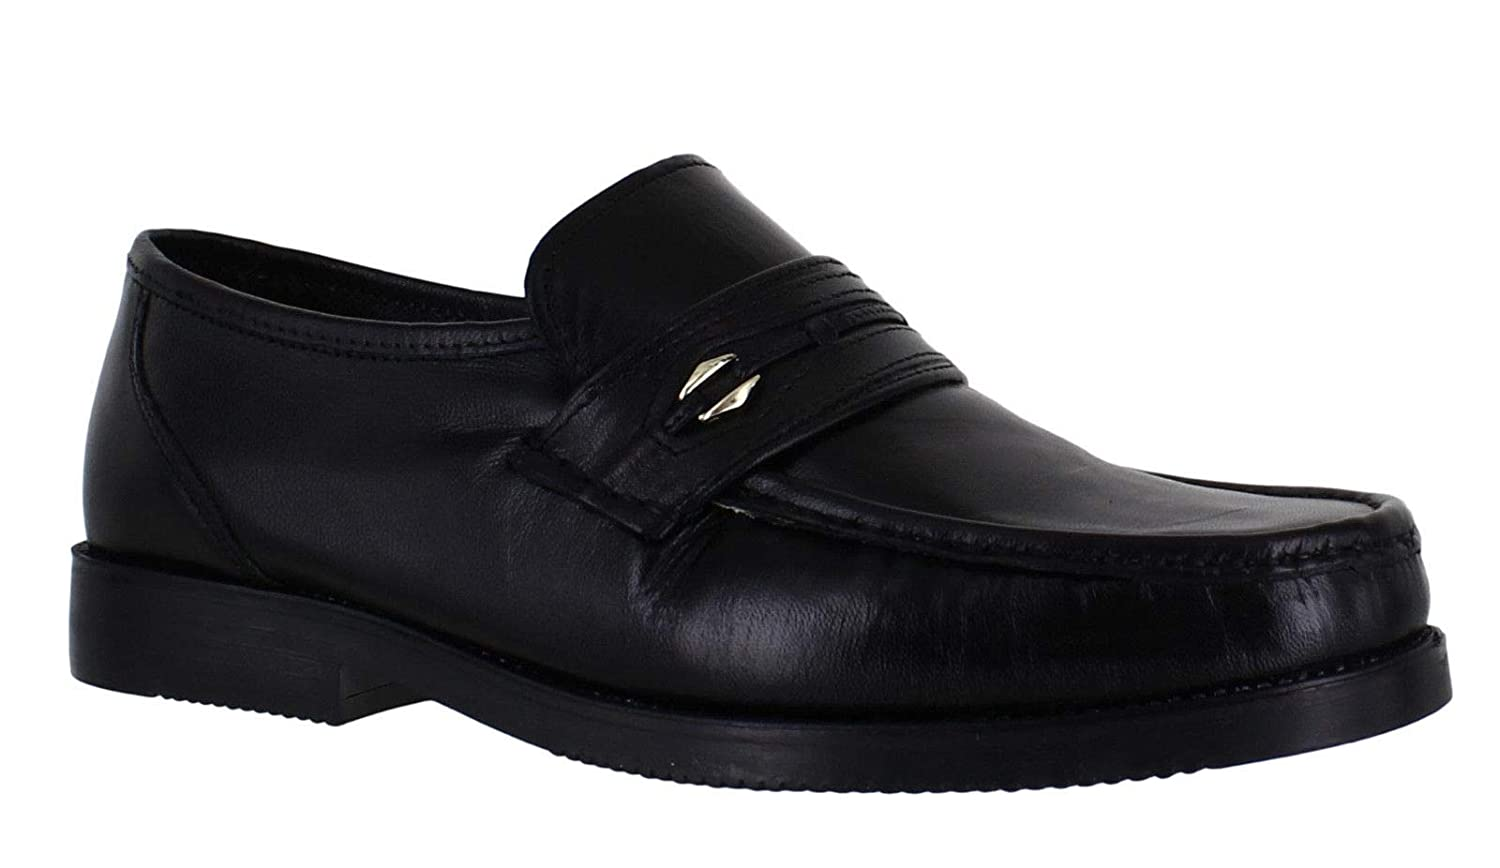 Luca Mancini Mens Soft Leather Wide Fit Moccasin Touch Fastening Formal Shoes Size 6-12